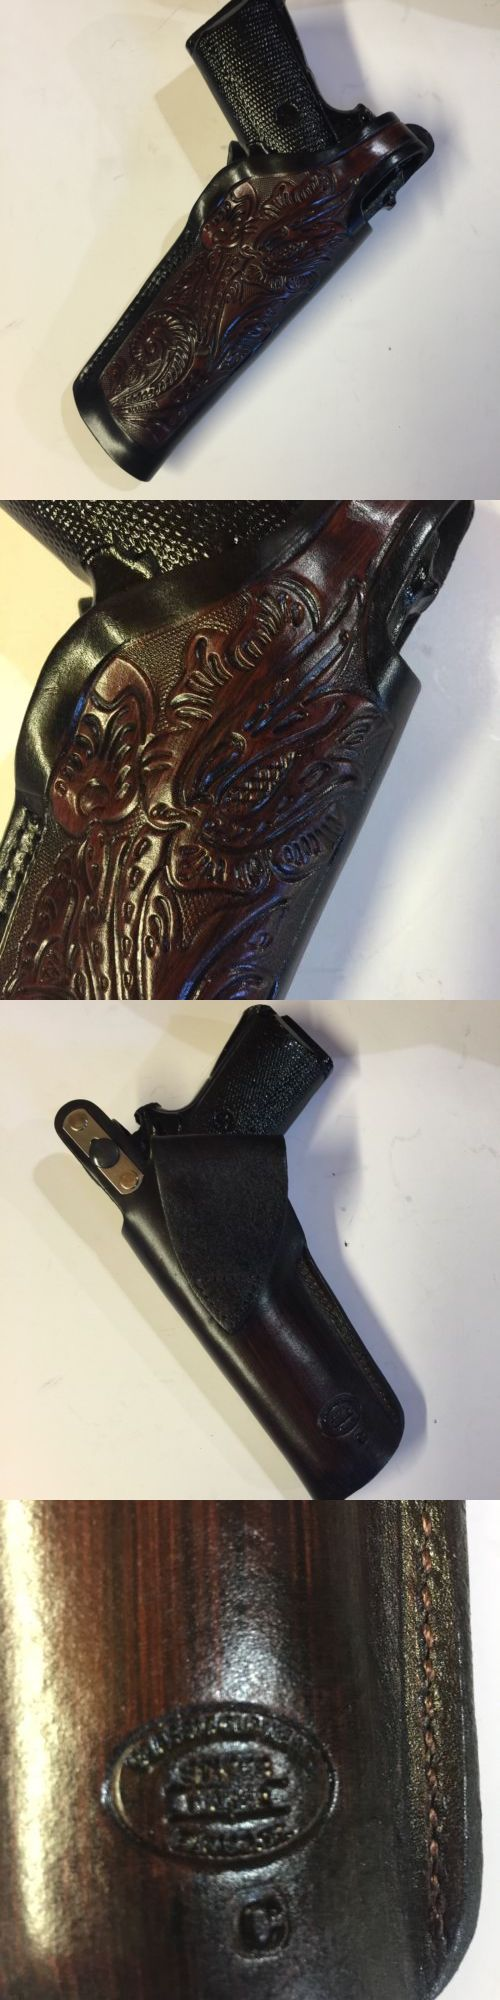 Holsters 177885: Colt 1911 45 Model,Remington,Ria,Springfield, 5 Barrel, Kimber Leather Holster -> BUY IT NOW ONLY: $39.99 on eBay!